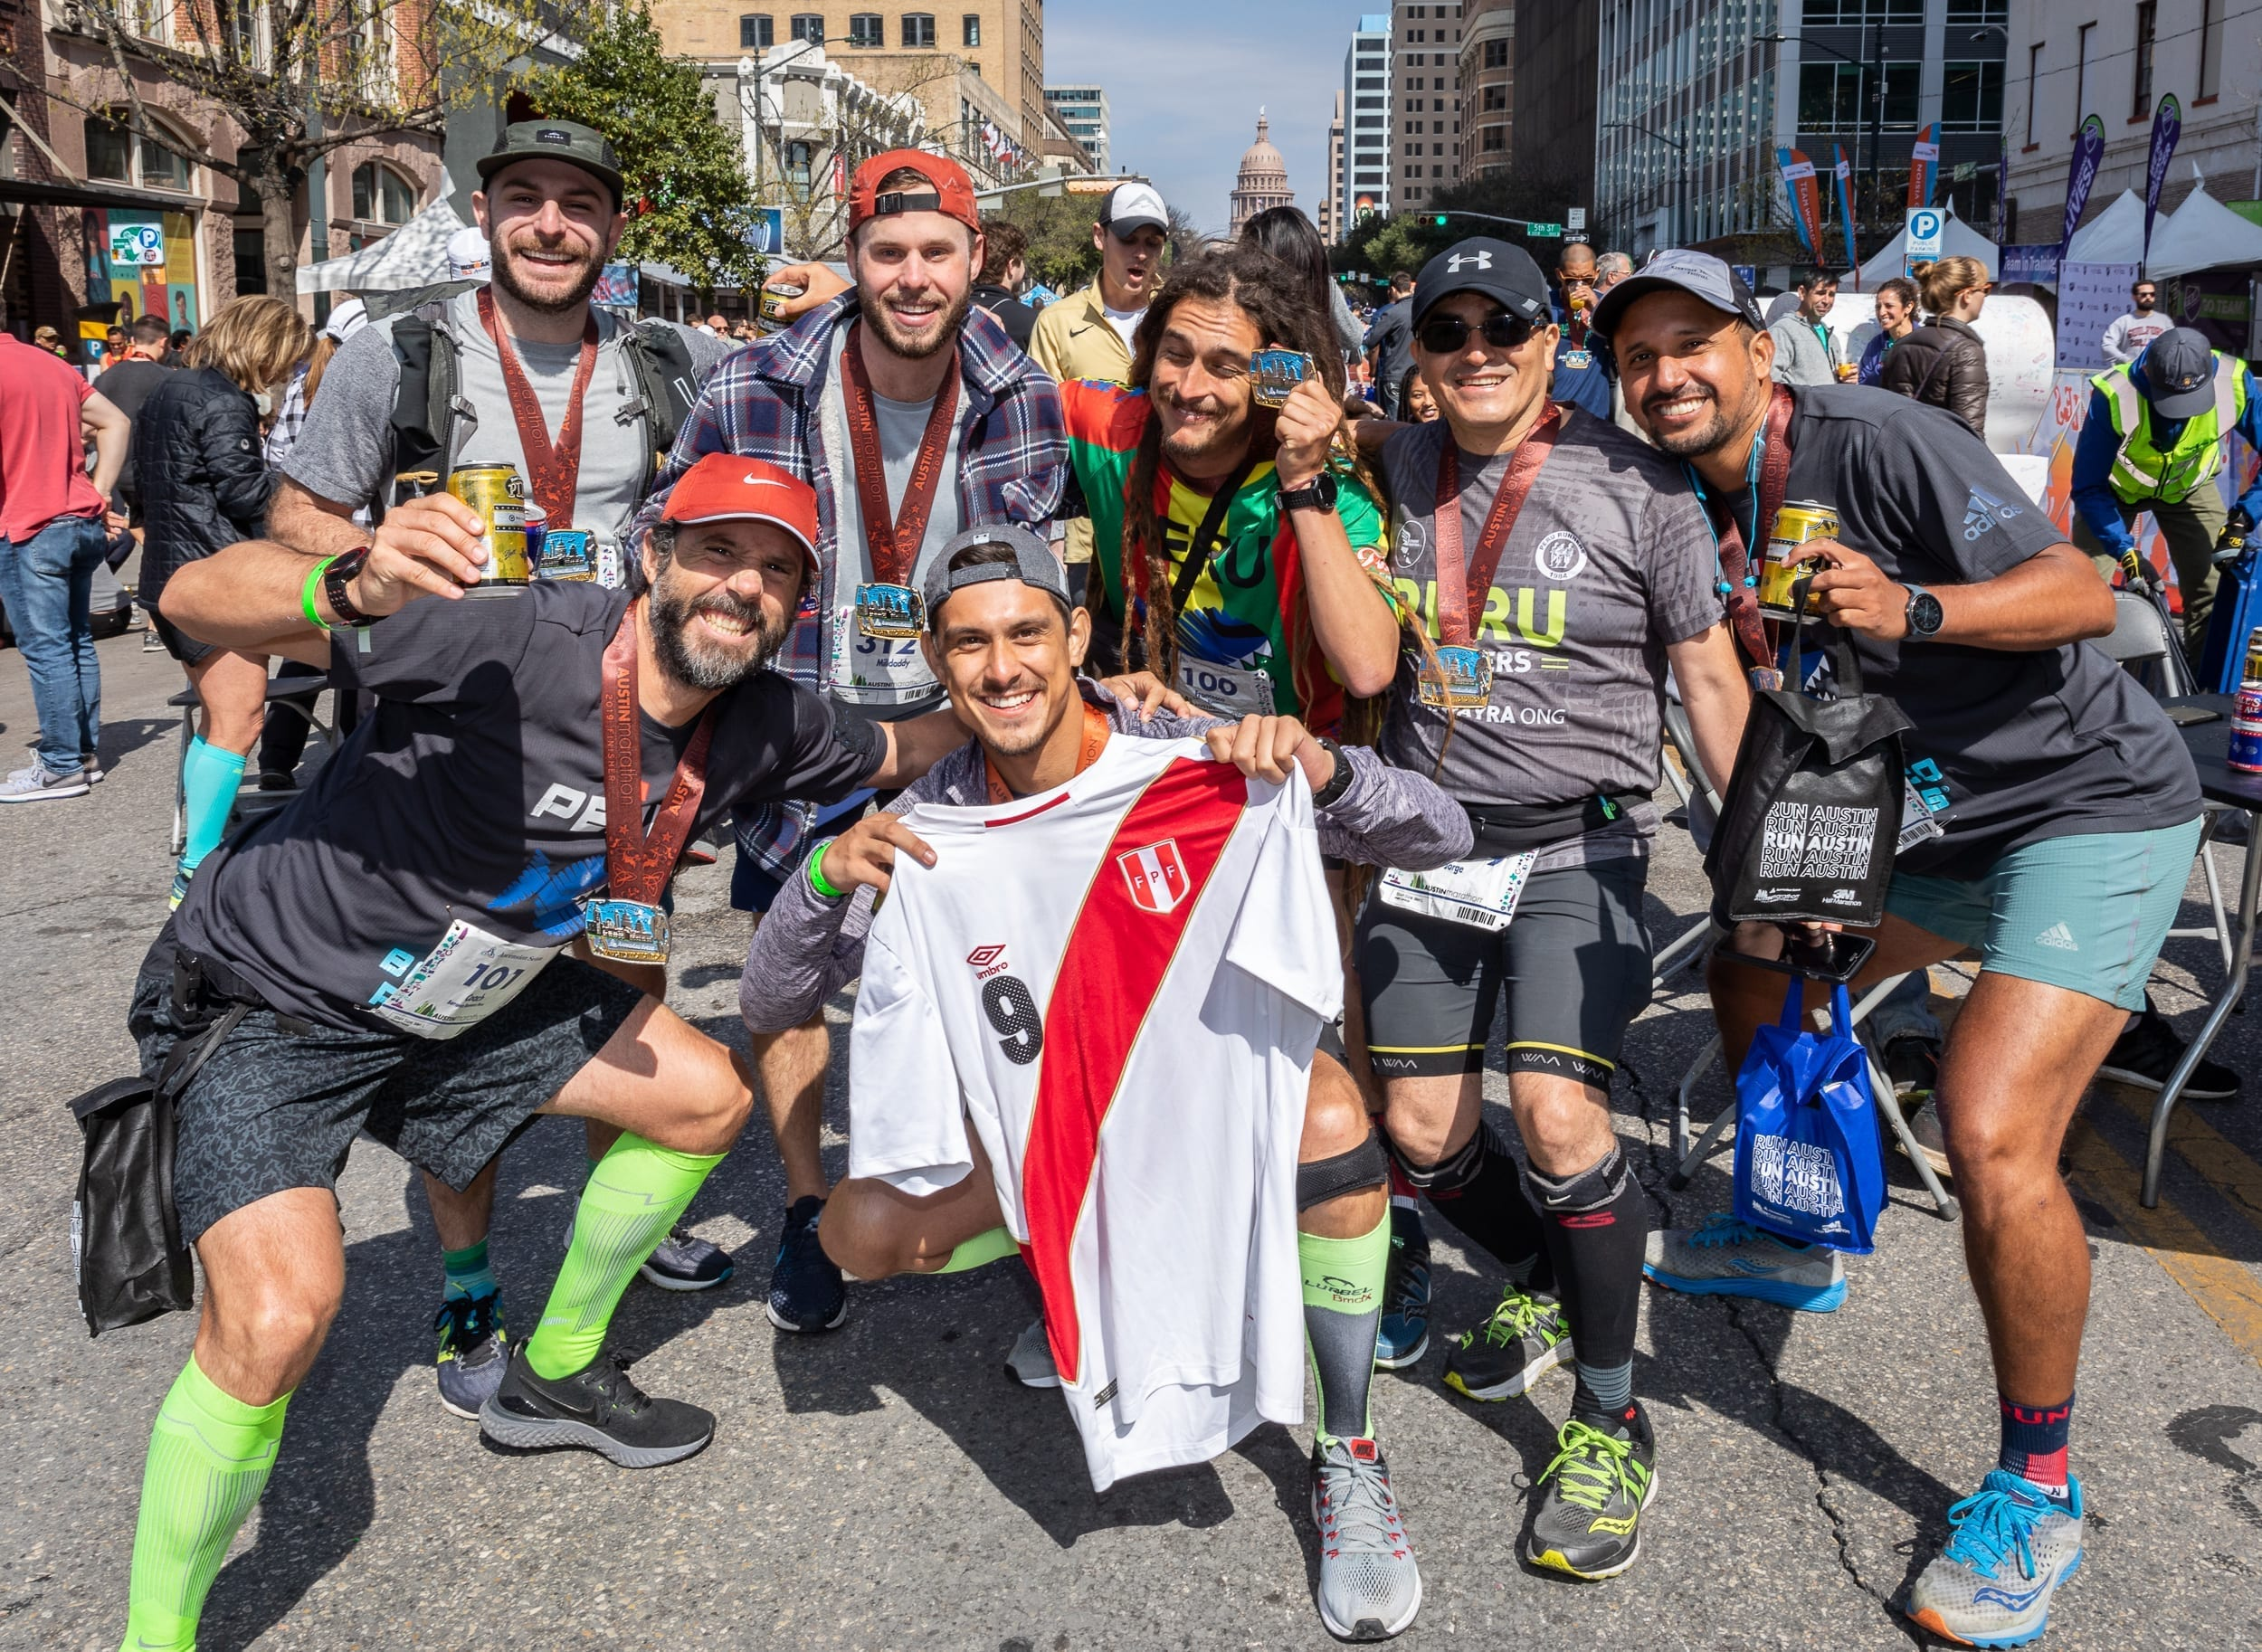 Runners traveled from all 50 states ad 38 countries to participate in the 2019 Austin Marathon, which contributed $48.5 million to the Austin economy.